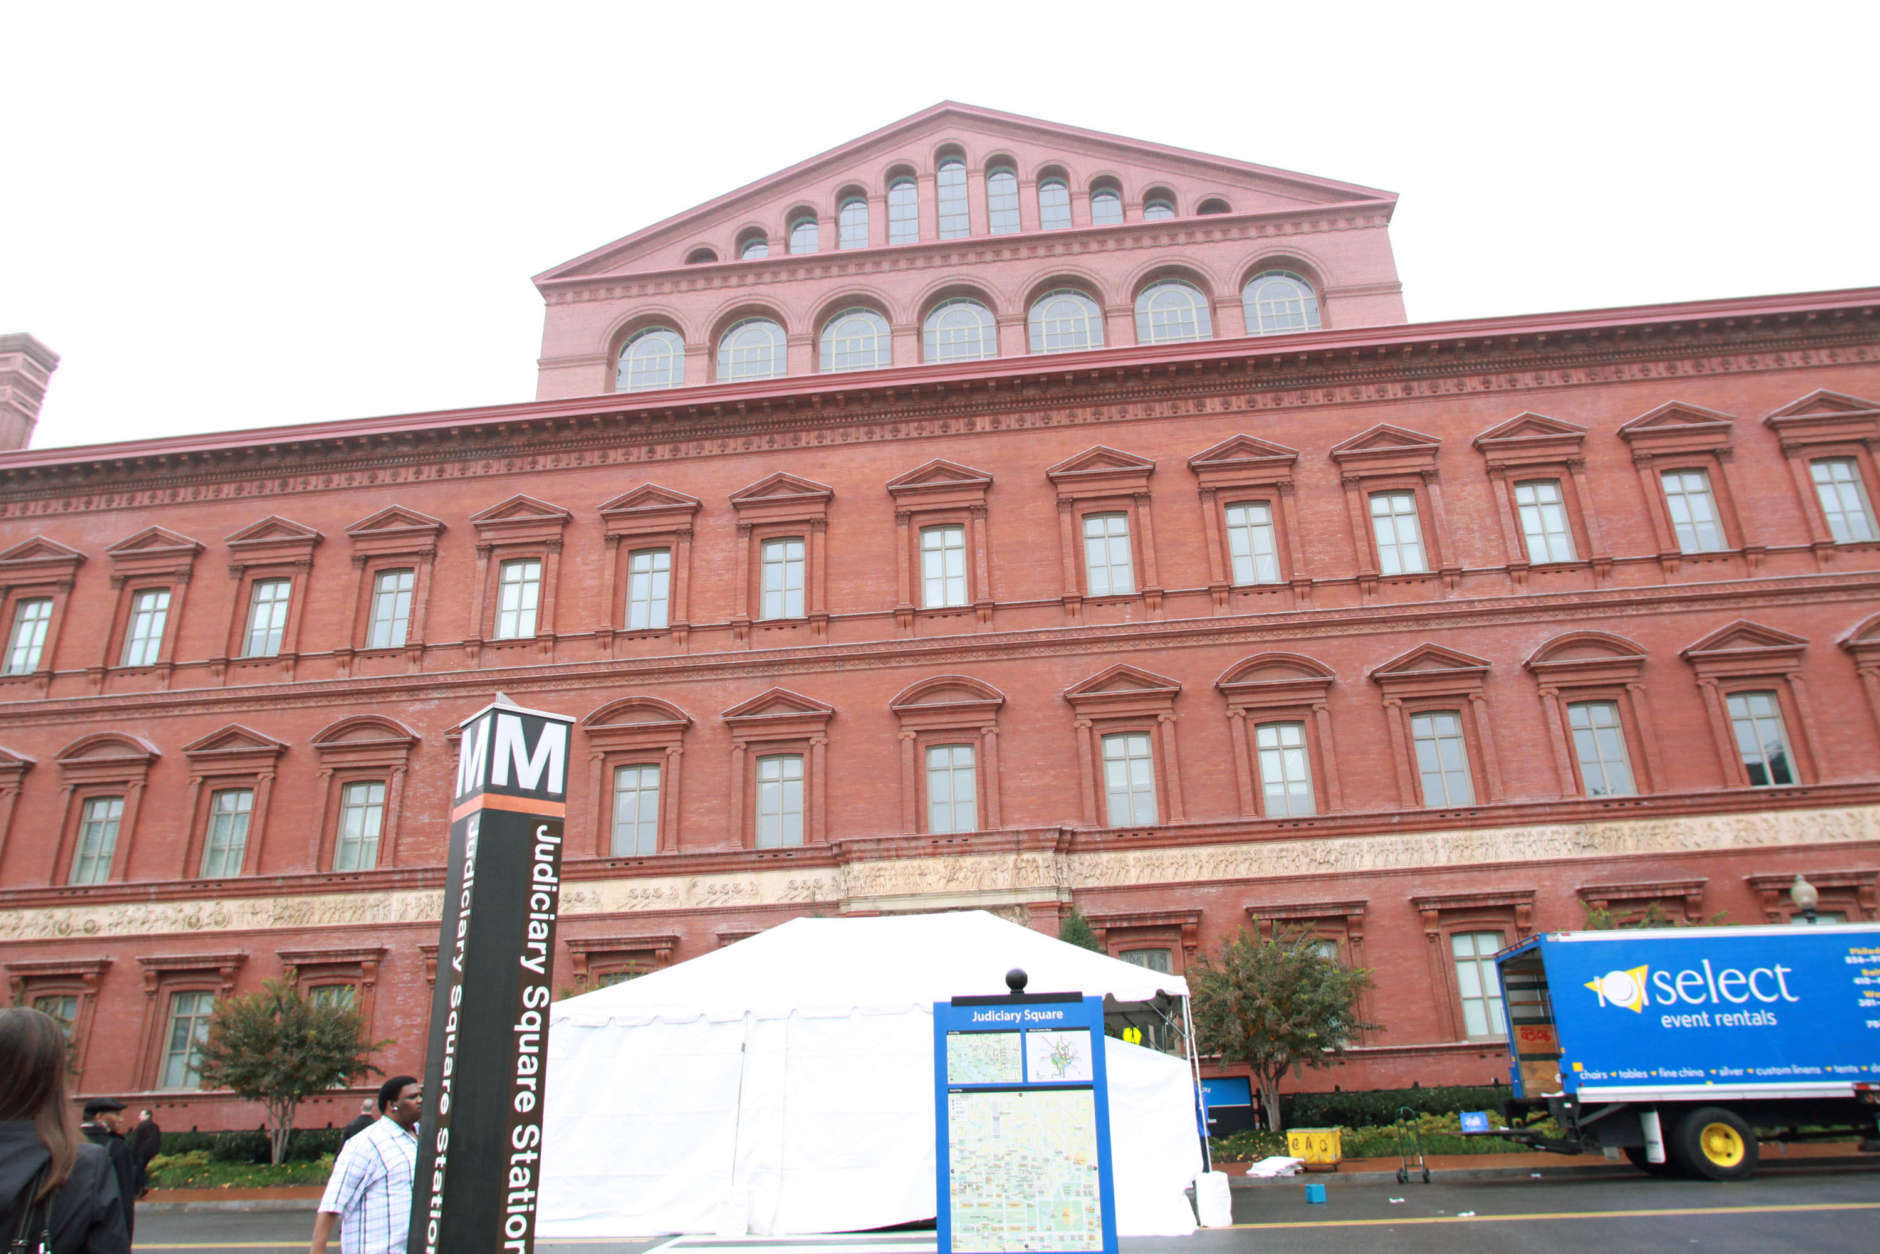 A tent set up at a door of the the National Building Museum in Washington, Friday, Nov. 14, 2008, in preparation for the Summit on Financial Markets. (AP Photo/Lauren Victoria Burke)